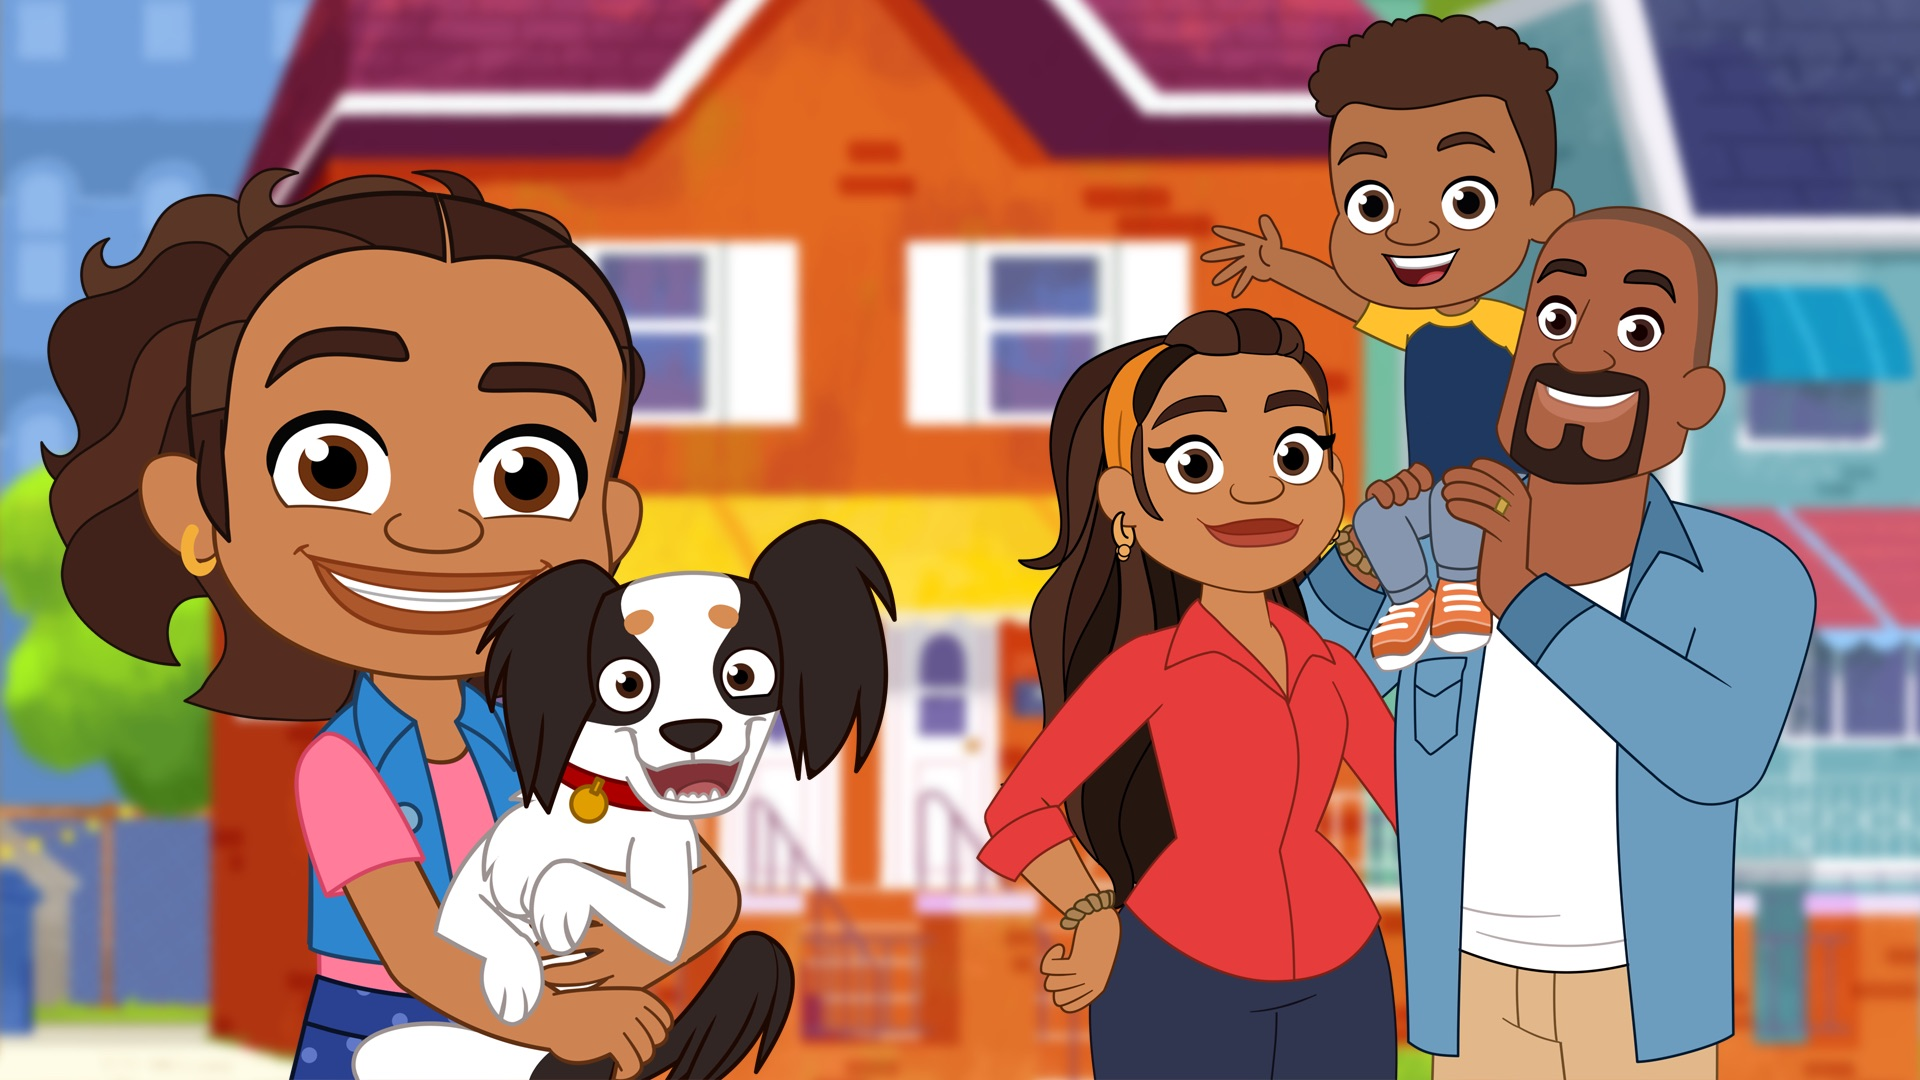 A cartoon image of a little girl holding a dog. Behind her is a orange house and a man and a woman. The man holds a little boy on his shoulder.